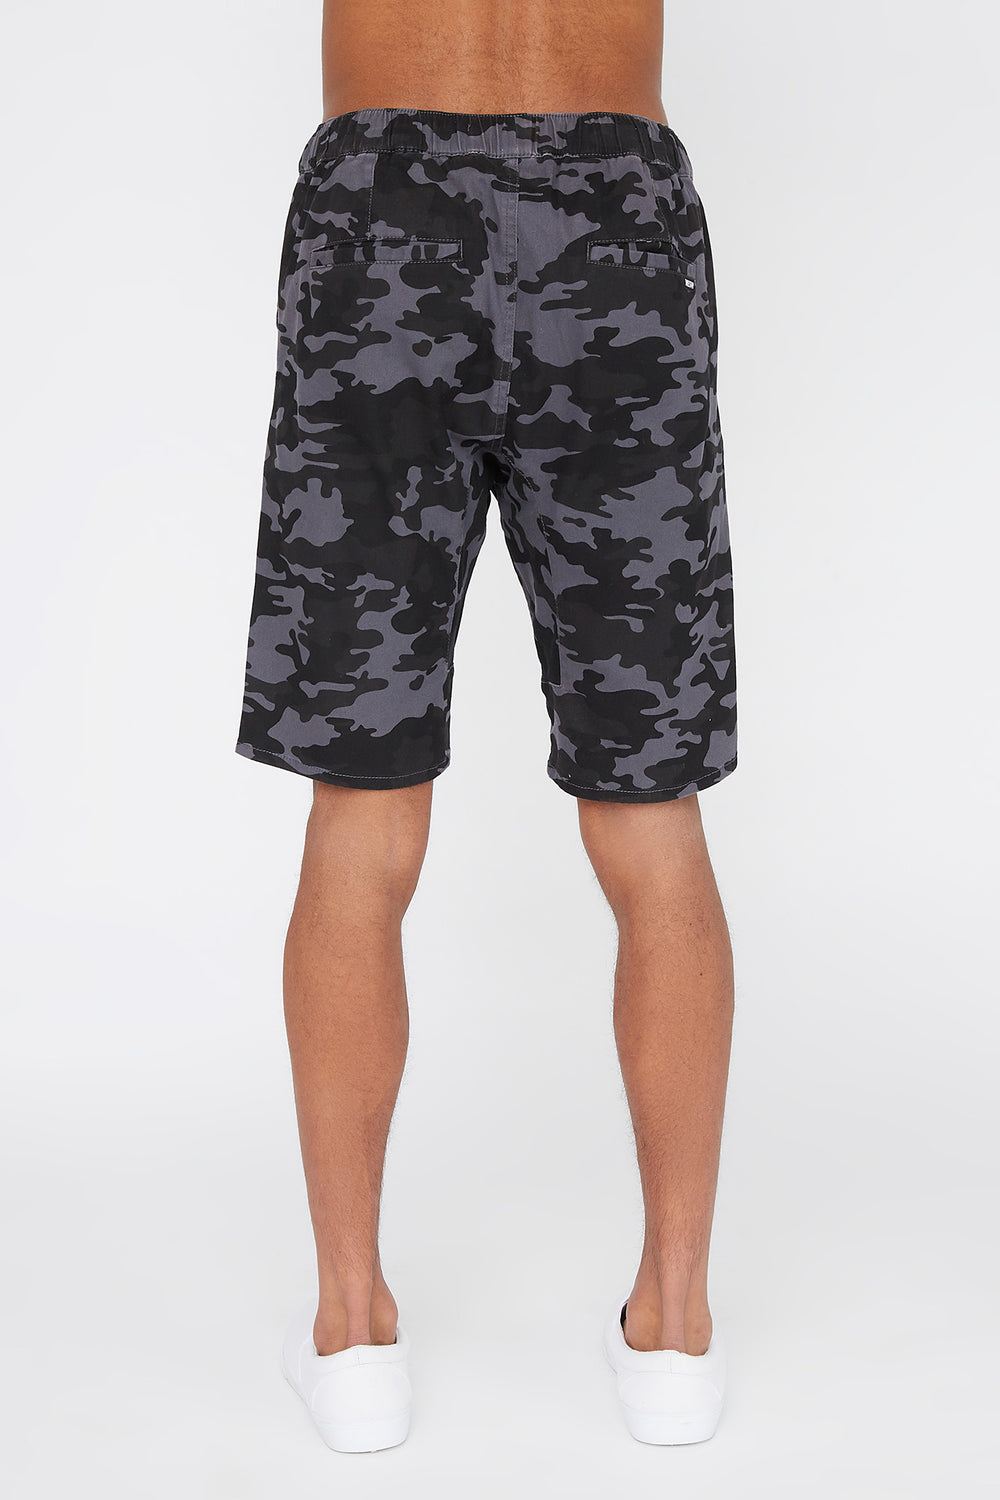 West49 Mens Camo Jogger Short Gingham